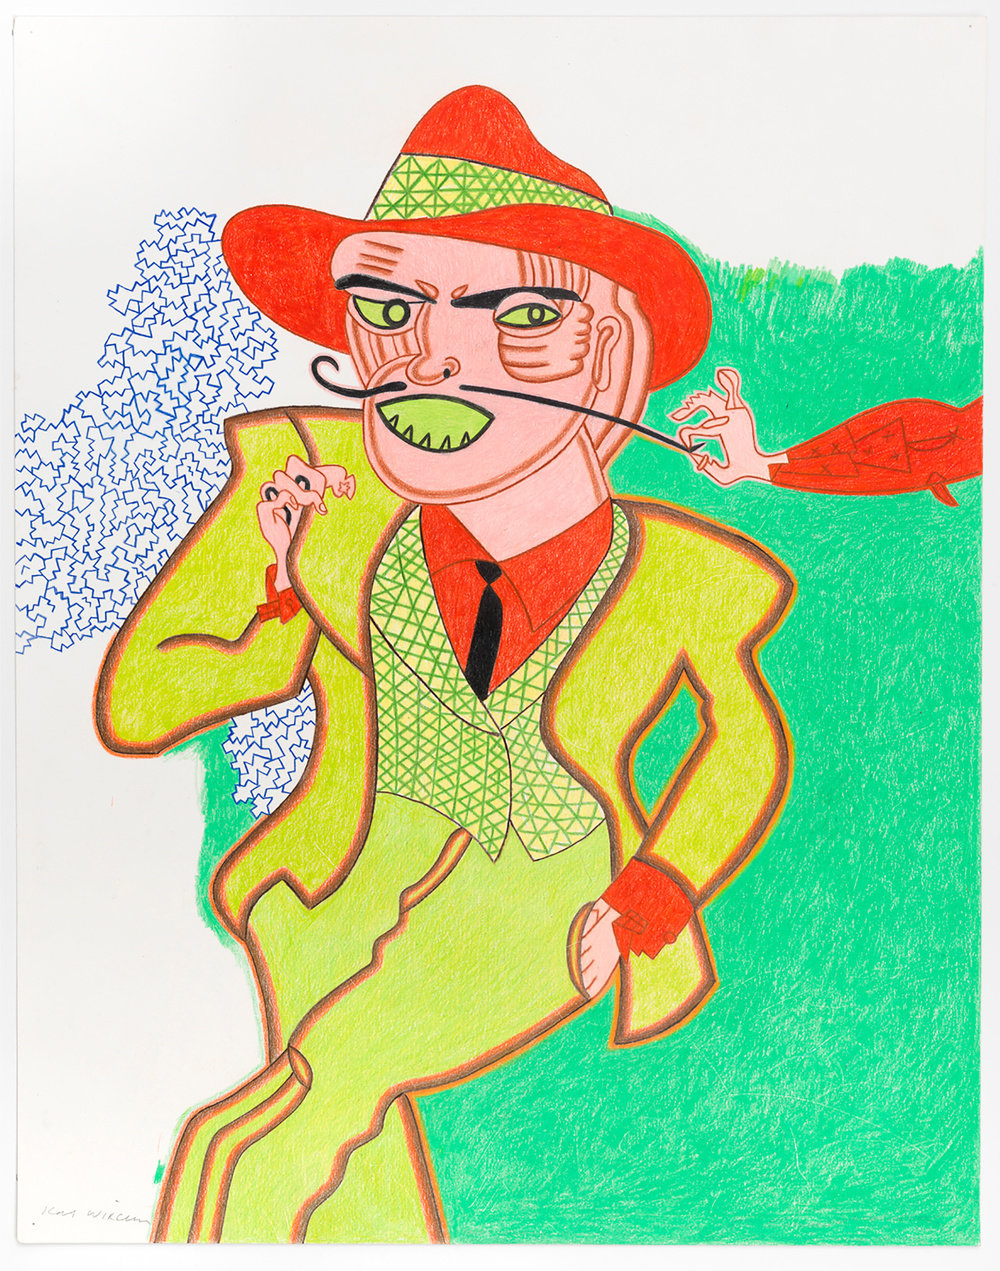 A color pencil and graphite on paper drawing by Karl Wirsum of a figure in a green suit, red shirt and red hat on a mostly green background. A hand emerging from out of frame is pulling on the figures mustache.